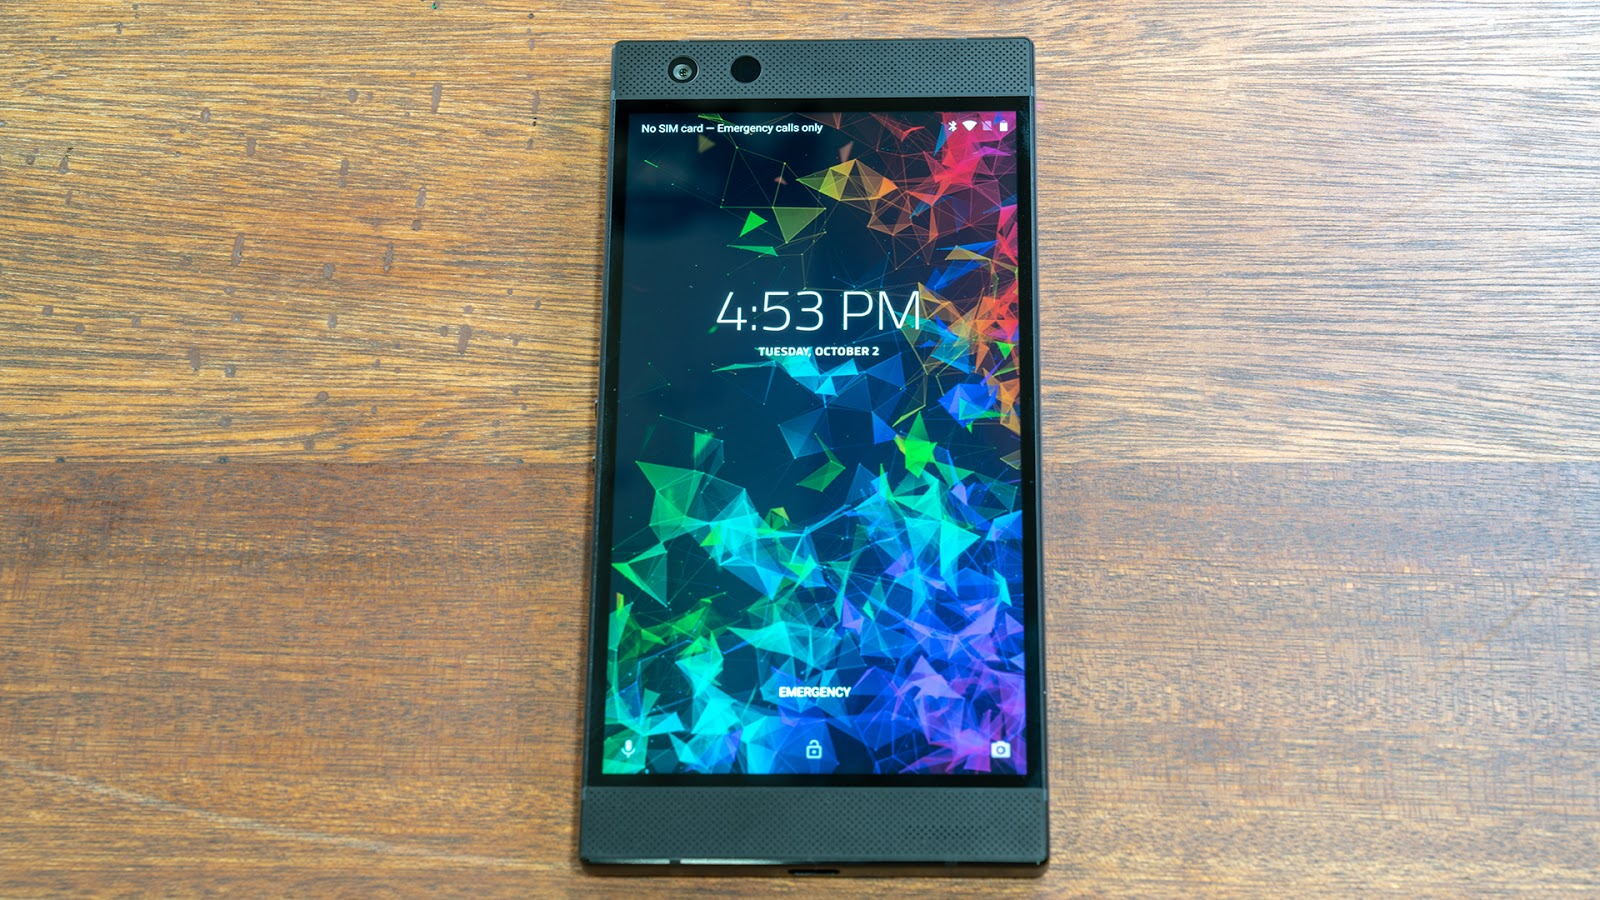 One of the most obvious changes on the outside of the phone is that the Razer logo finally lights up, and fully supports Chroma.